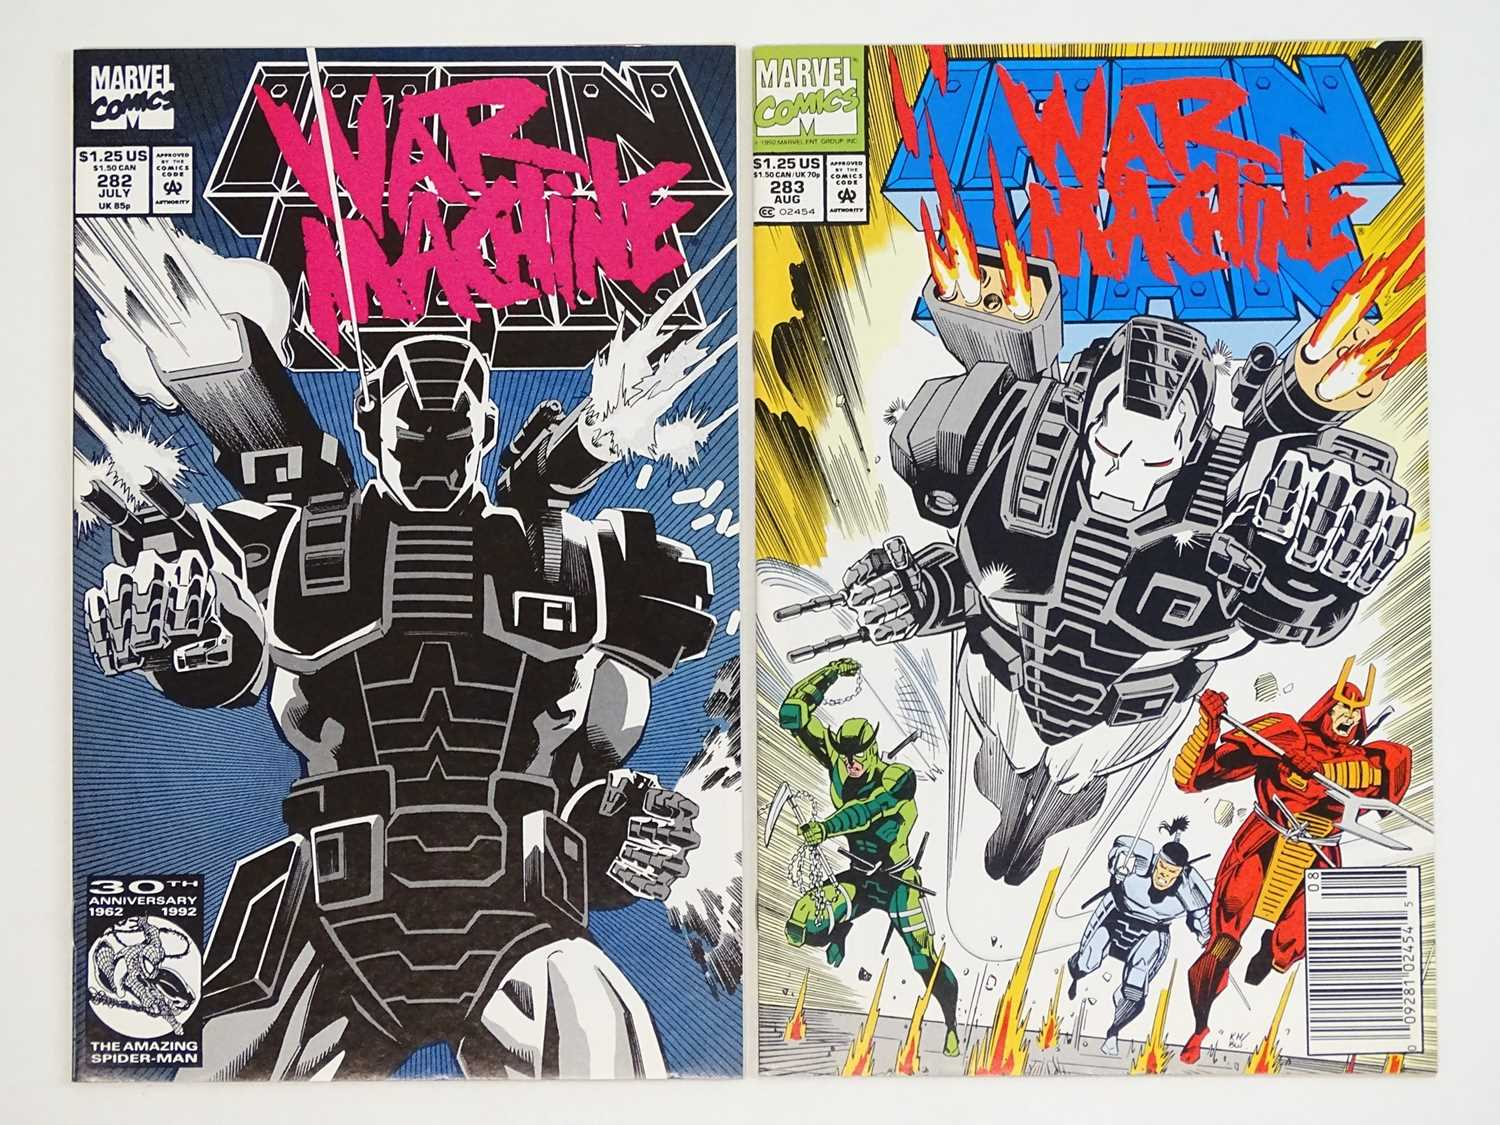 IRON MAN #282 & 283 - (2 in Lot) - (1992 - MARVEL) - HOT Character & Book - First full and second